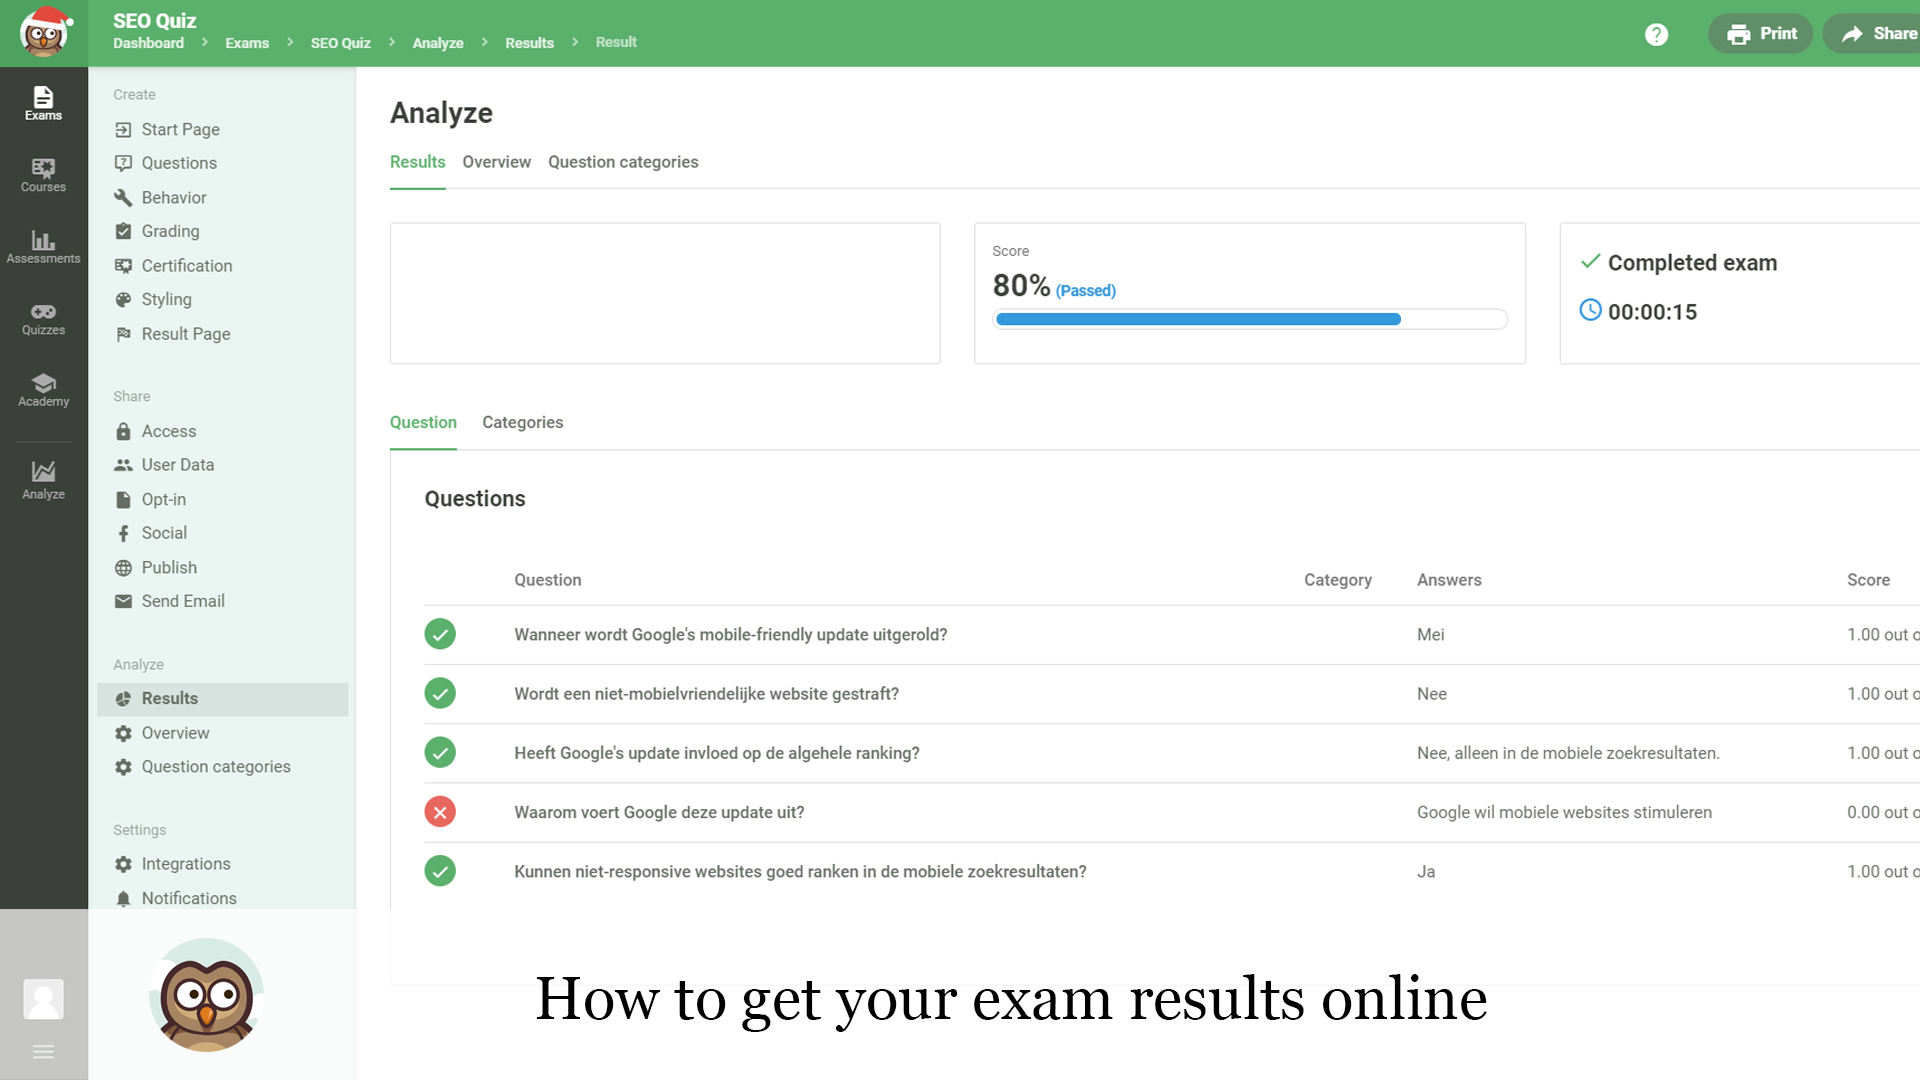 How to get your exam results online